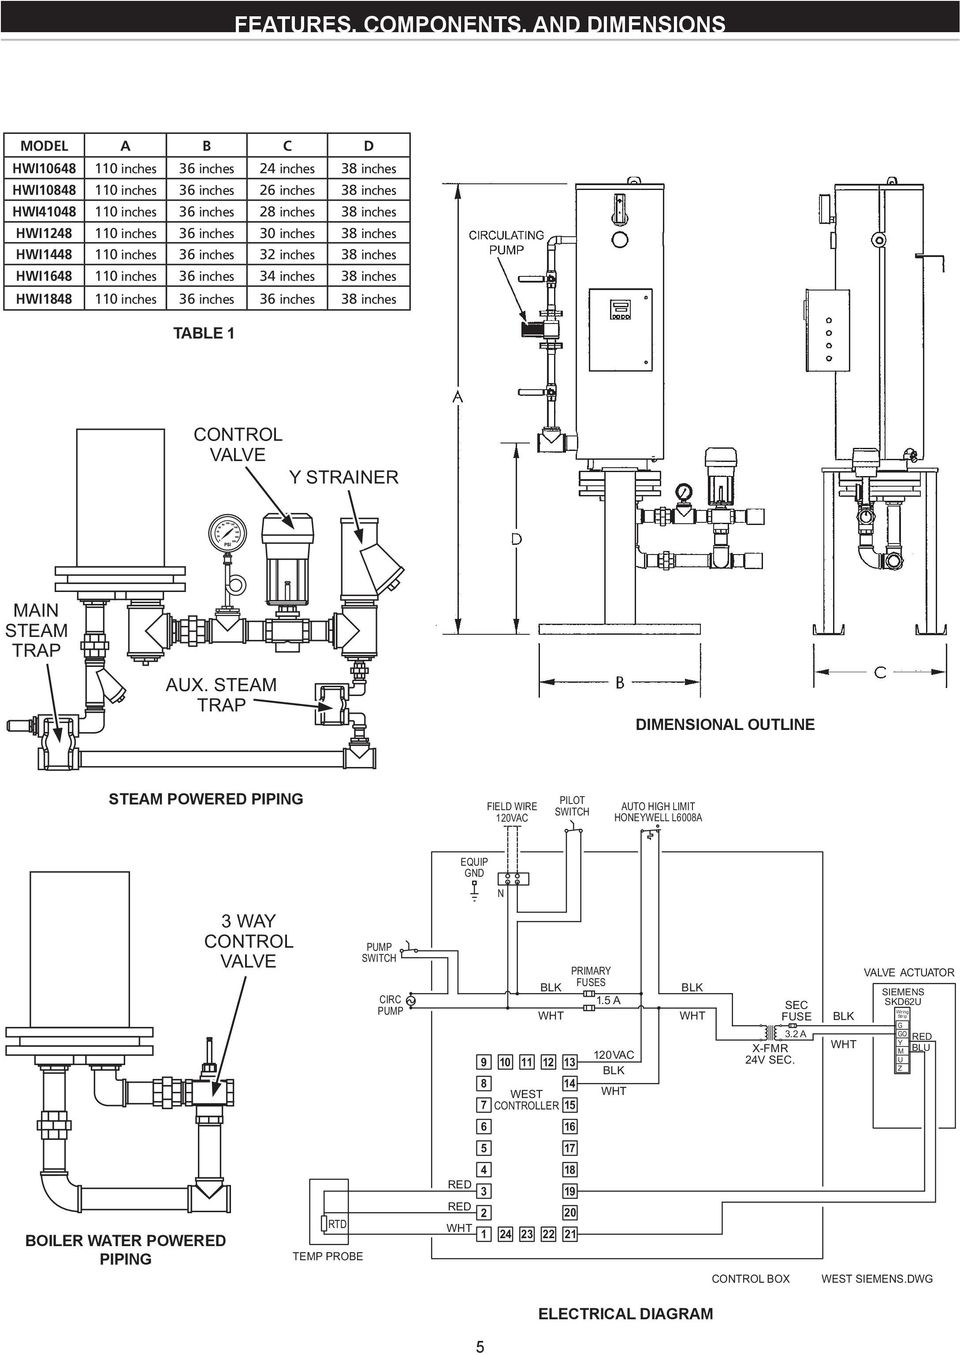 hight resolution of dwg z electrical diagram 5 inches table 1 control valve y strainer main steam trap aux